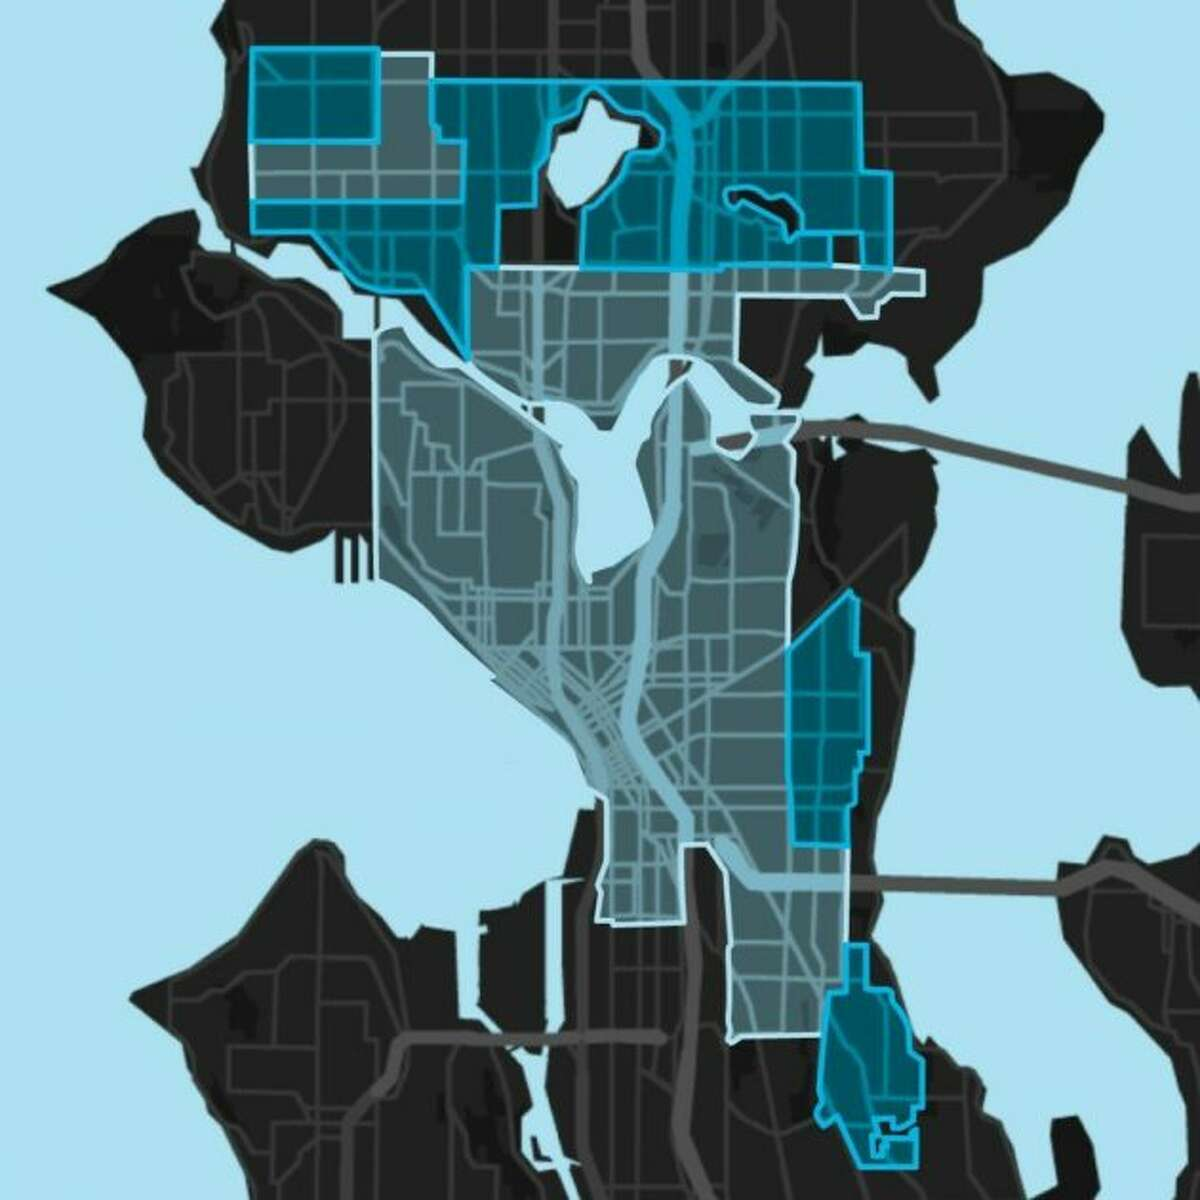 GIG has now expanded its service area to include Columbia City, Madrona, Greenlake and North Seattle.